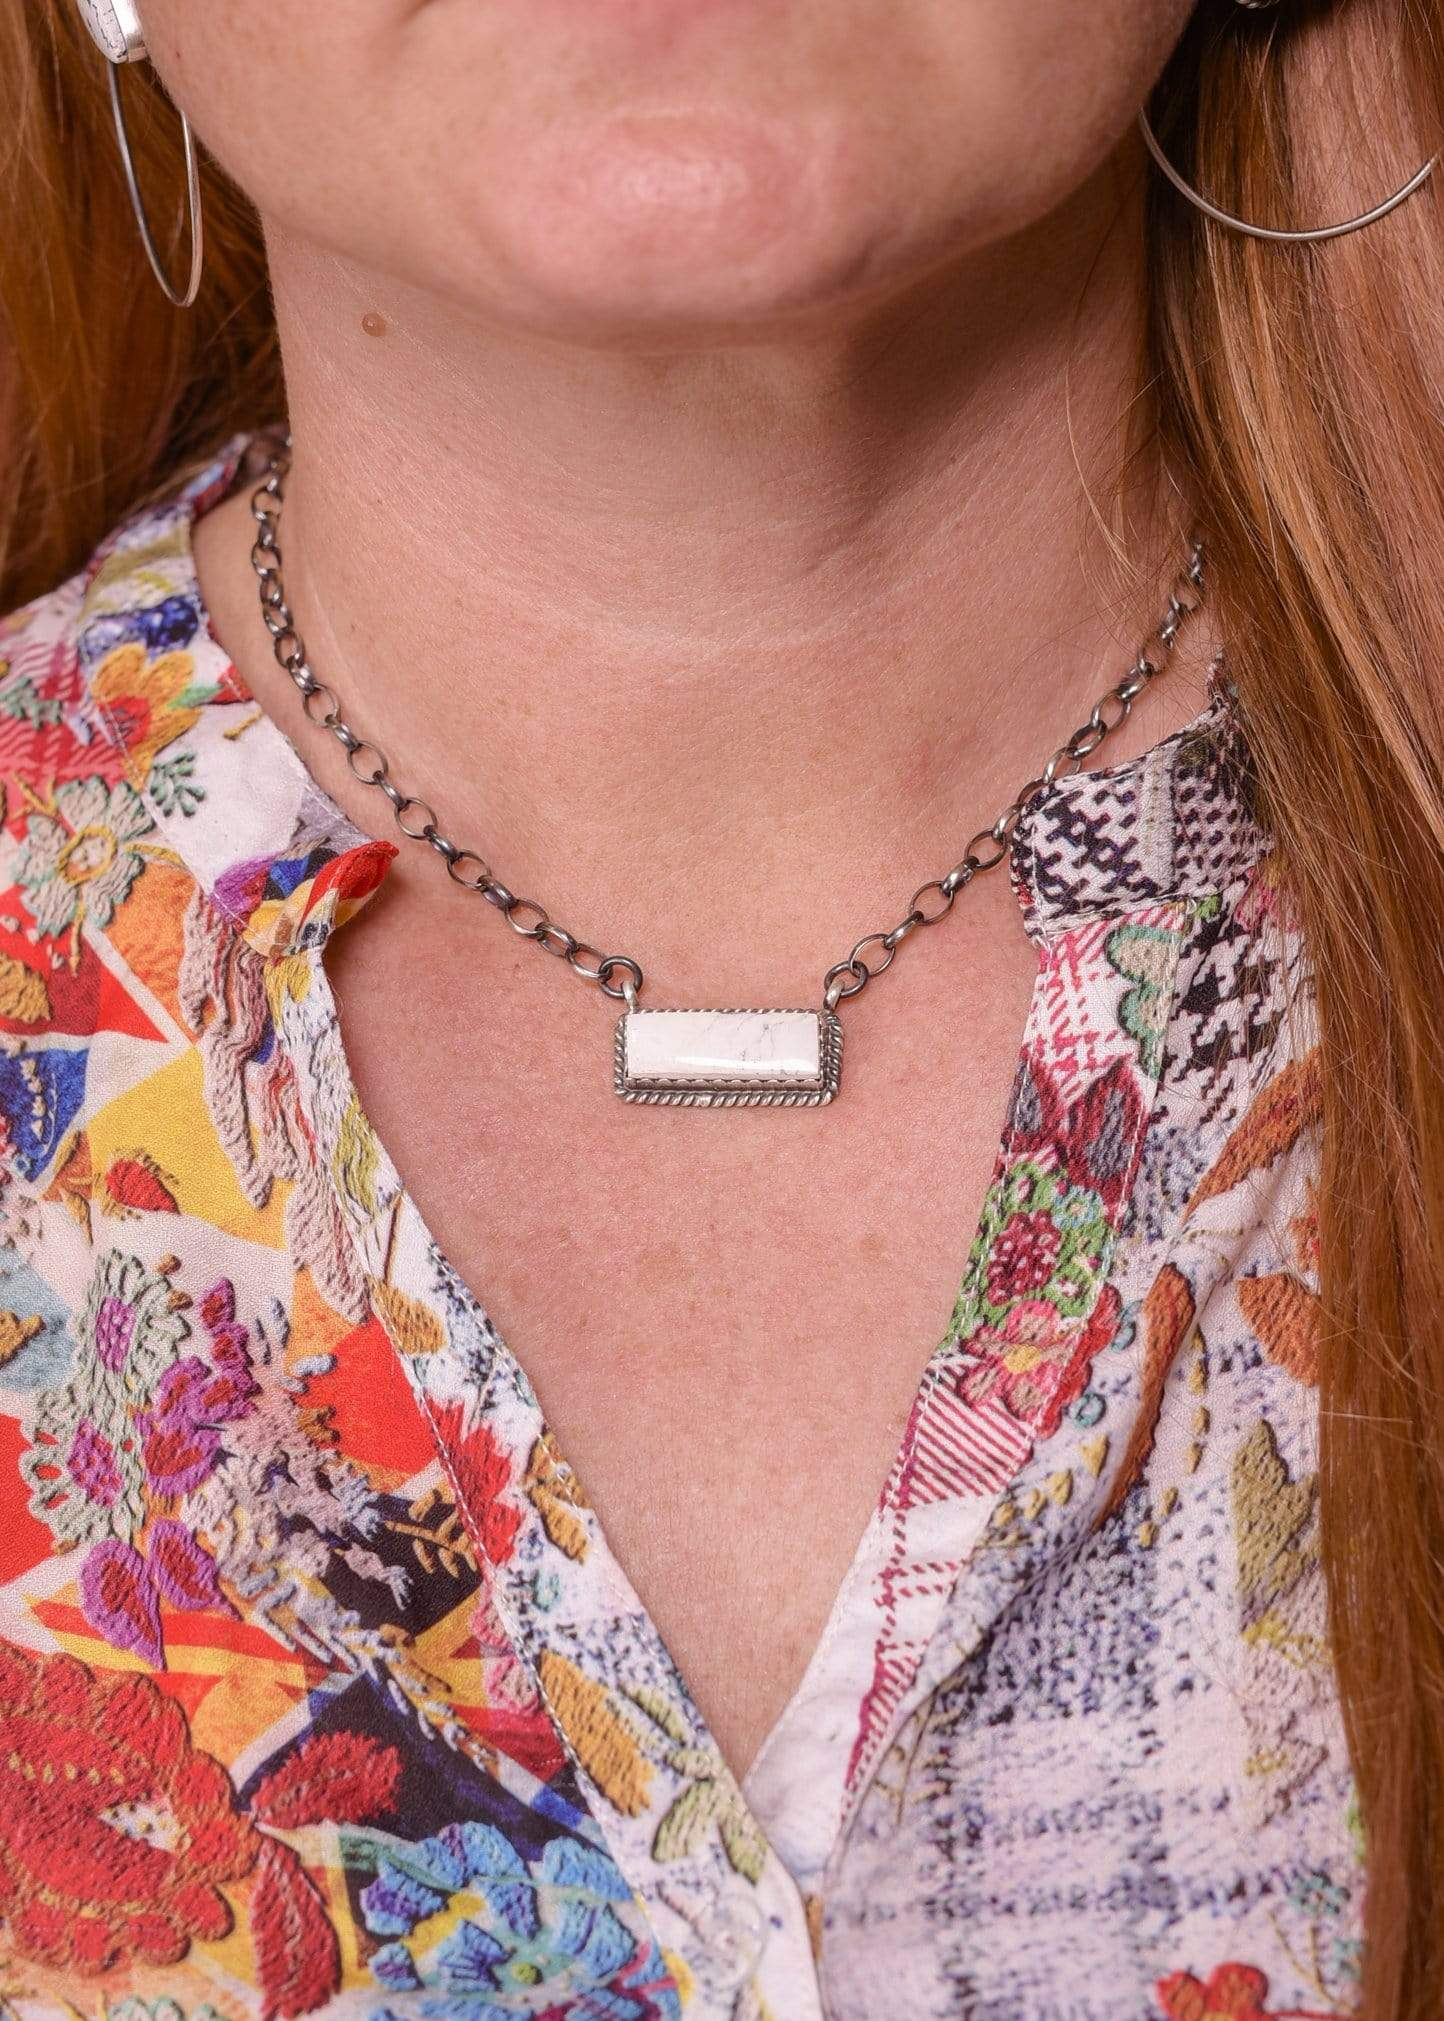 Accessorize In Style Sterling Necklaces White Buffalo Bar Necklace - Small